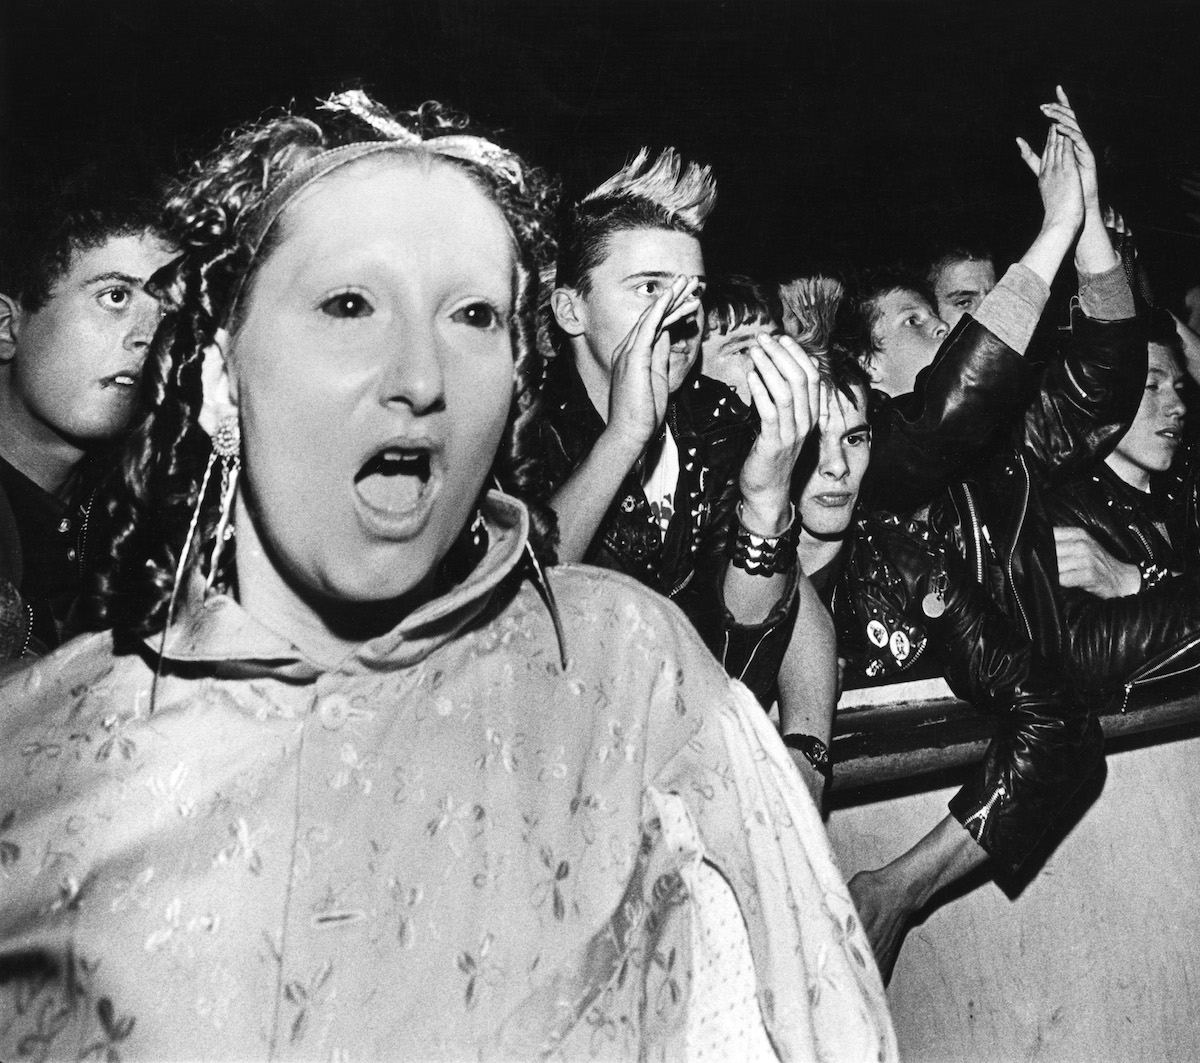 Jordan, Ant People, wearing face-paint, with no eyebrows, Adam & The Ants gig crowd, UK 1980s